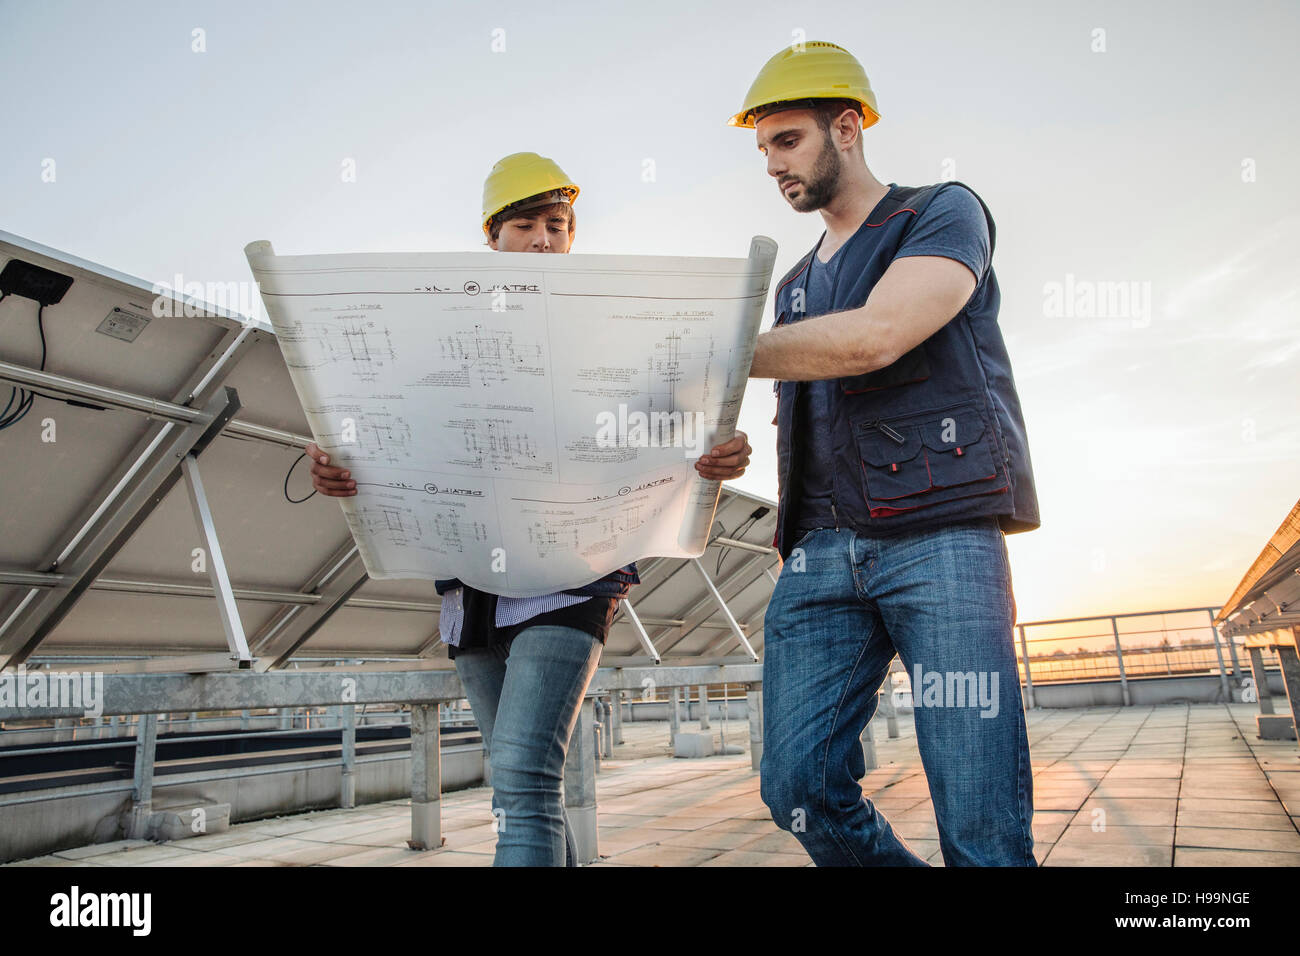 Architect and engineer inspecting solar power station - Stock Image